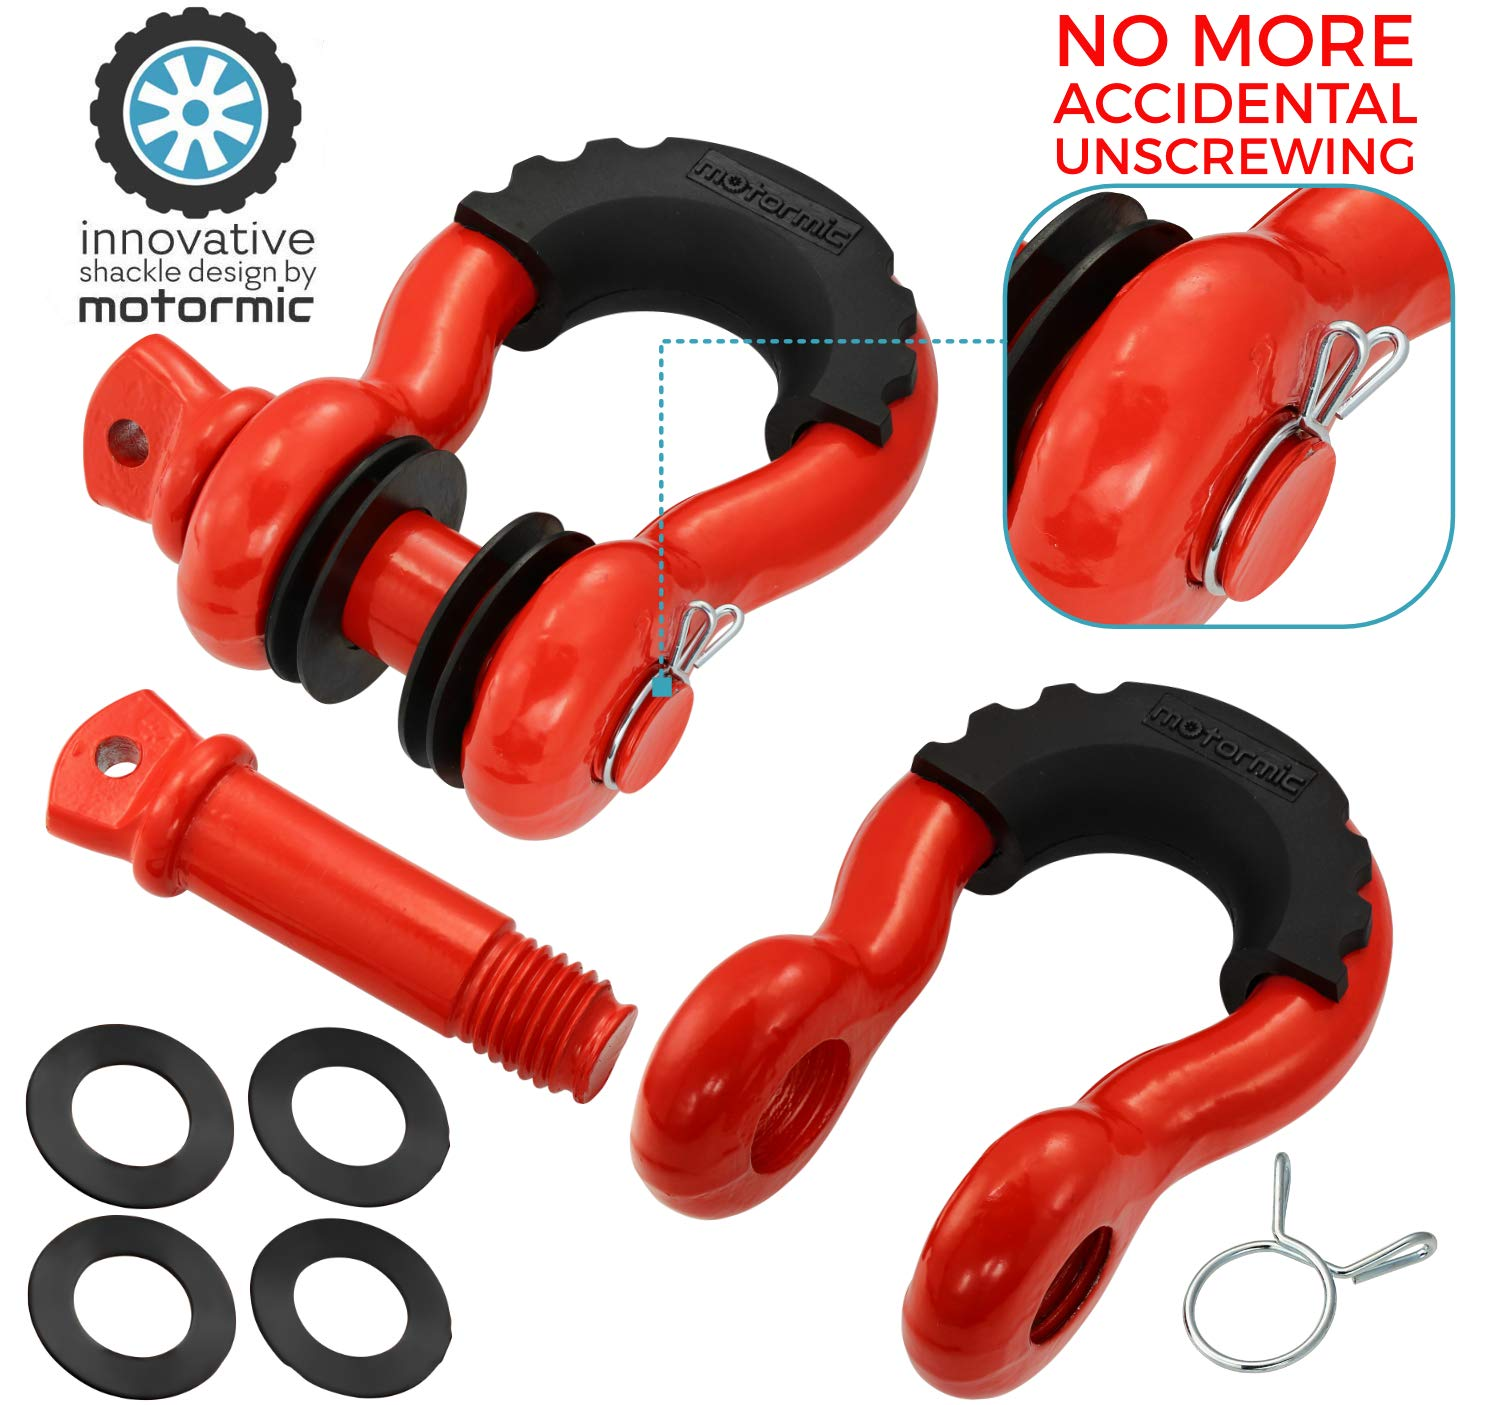 motormic RED Special D Ring Shackles 2pc - 3/4'' Clevis Shackle with 7/8'' Pin - Max 57,000 lbs Break Point - 2 Black Isolators and 8 Black Washers - Heavy Duty DRing for Tow Strap and Jeep Towing